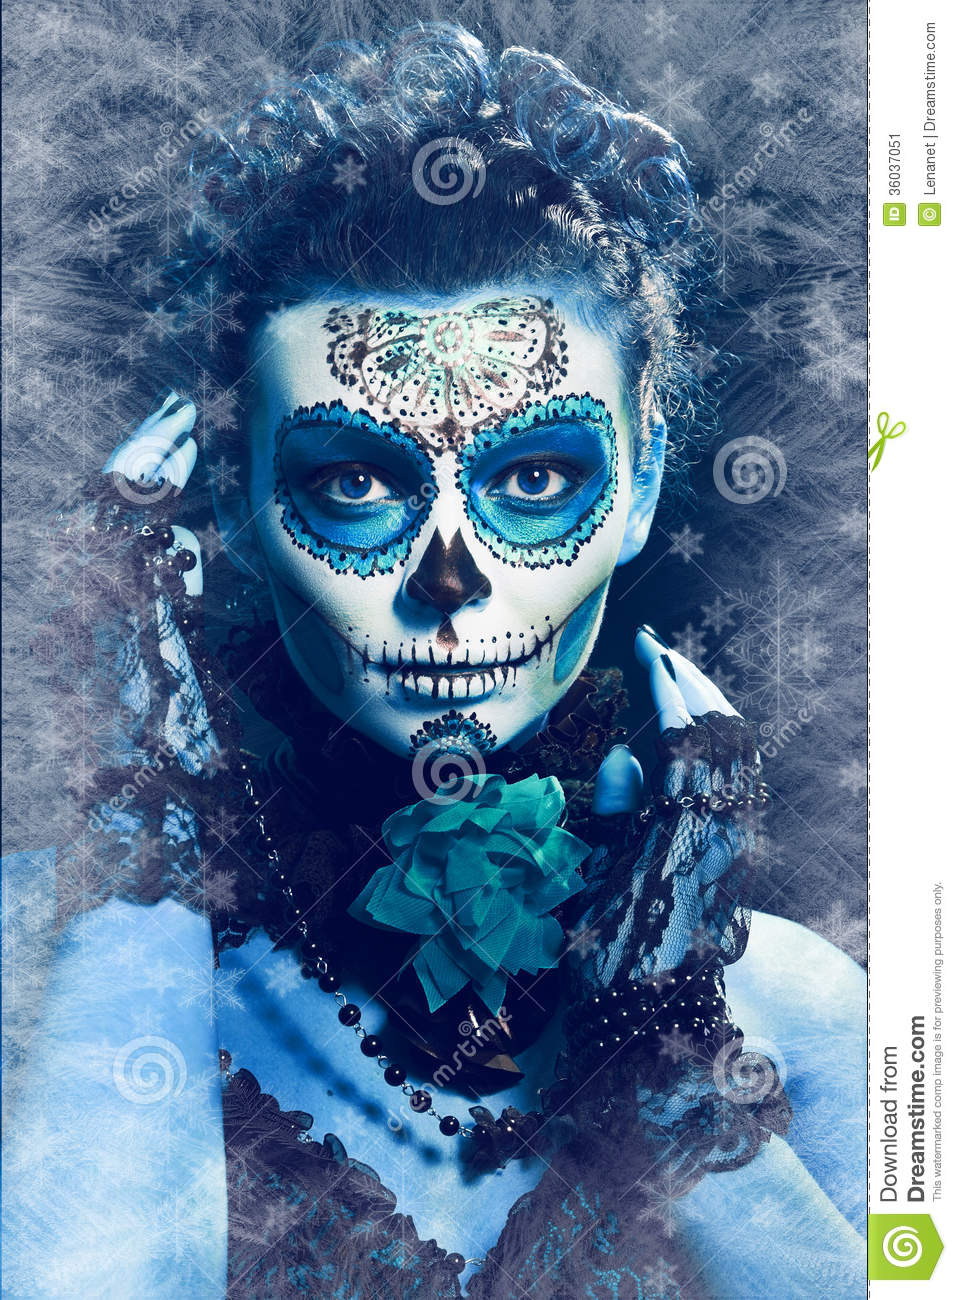 Sugar Skull Wallpaper Hd Winter Make Up Sugar Skull Stock Image Image Of Frozen